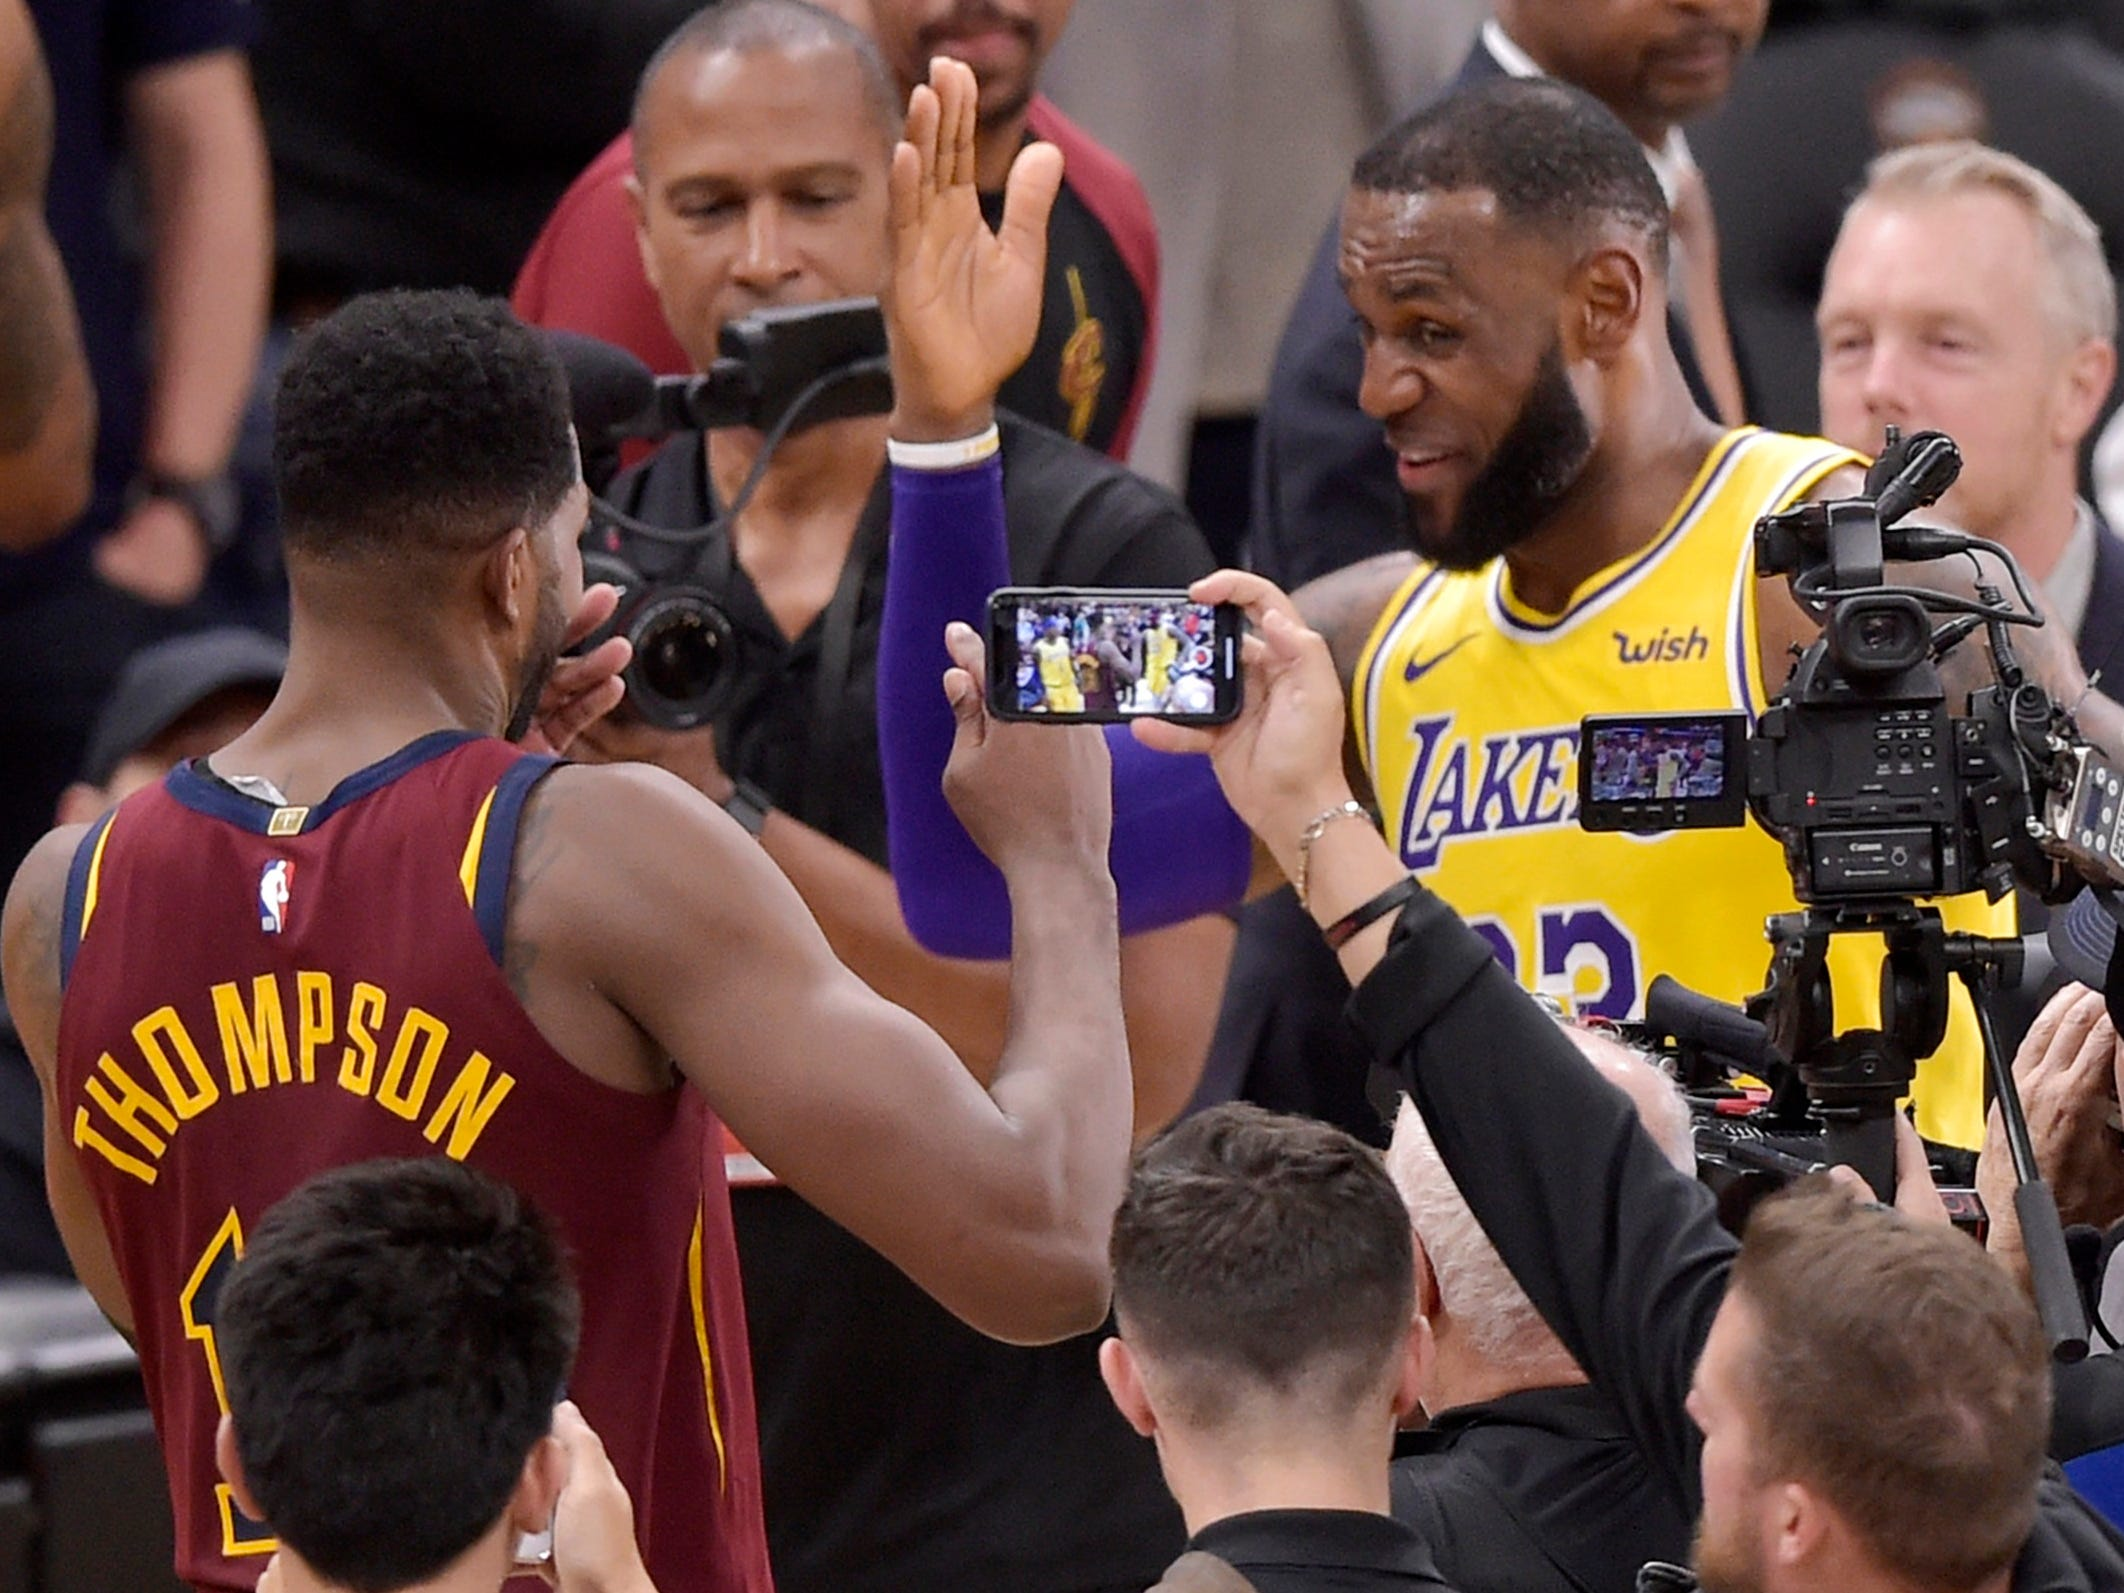 Nov. 21: LeBron James greets former Cavaliers teammate Tristan Thompson after returning to Cleveland for the first time as a member of the Lakers. James got a hero's welcome, then rallied past his old team for a 109-105 Lakers win.